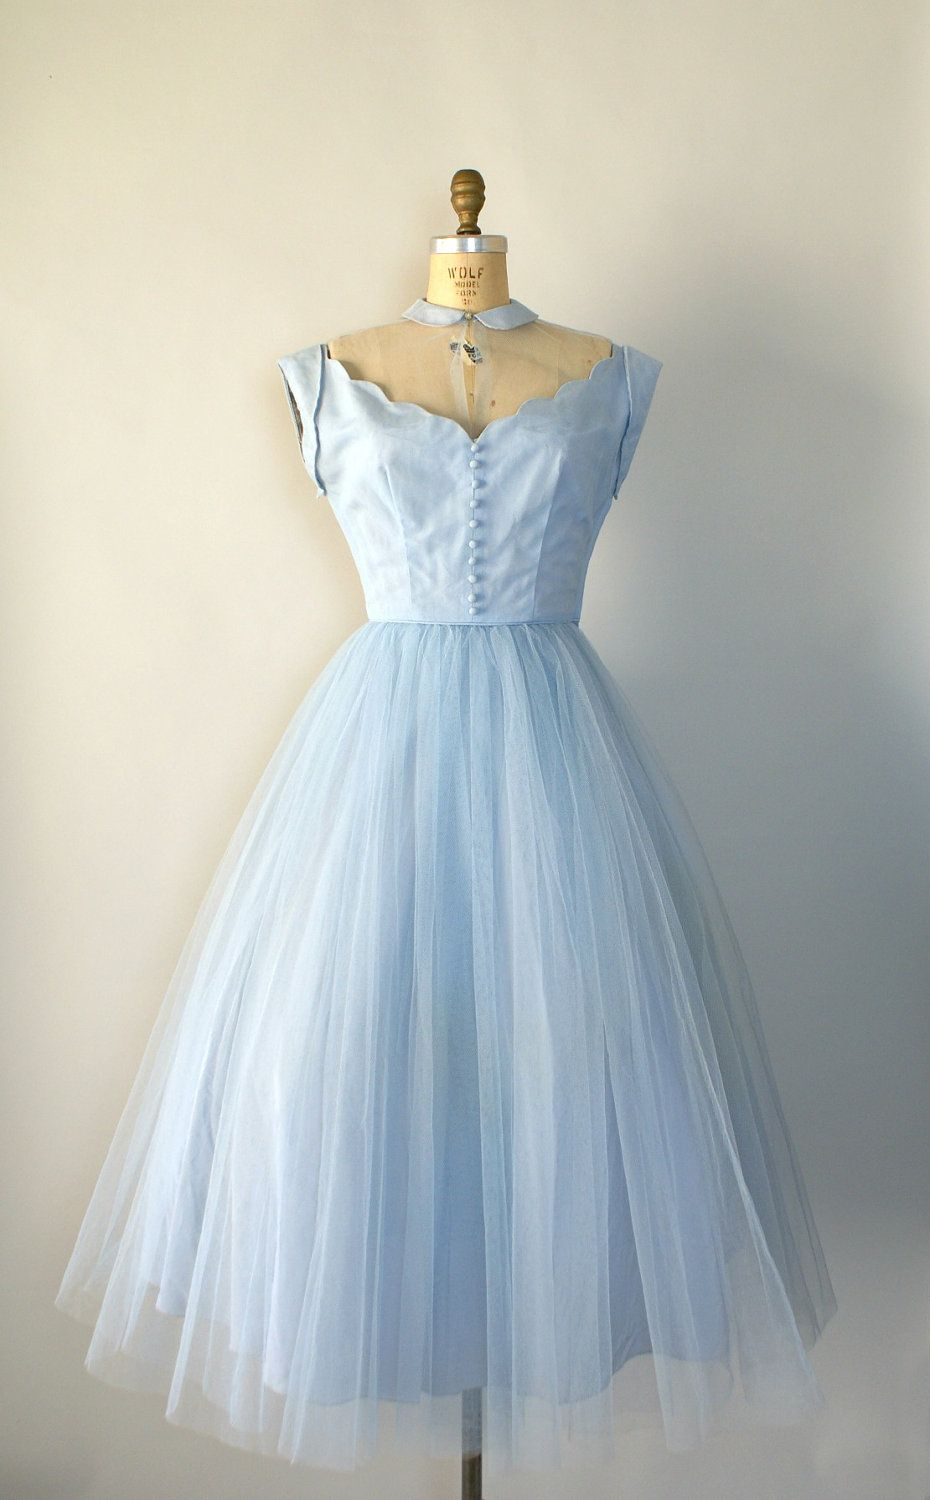 Vintage 1950s Formal Gown - Pale Blue Tulle Party Dress - Dancing on ...